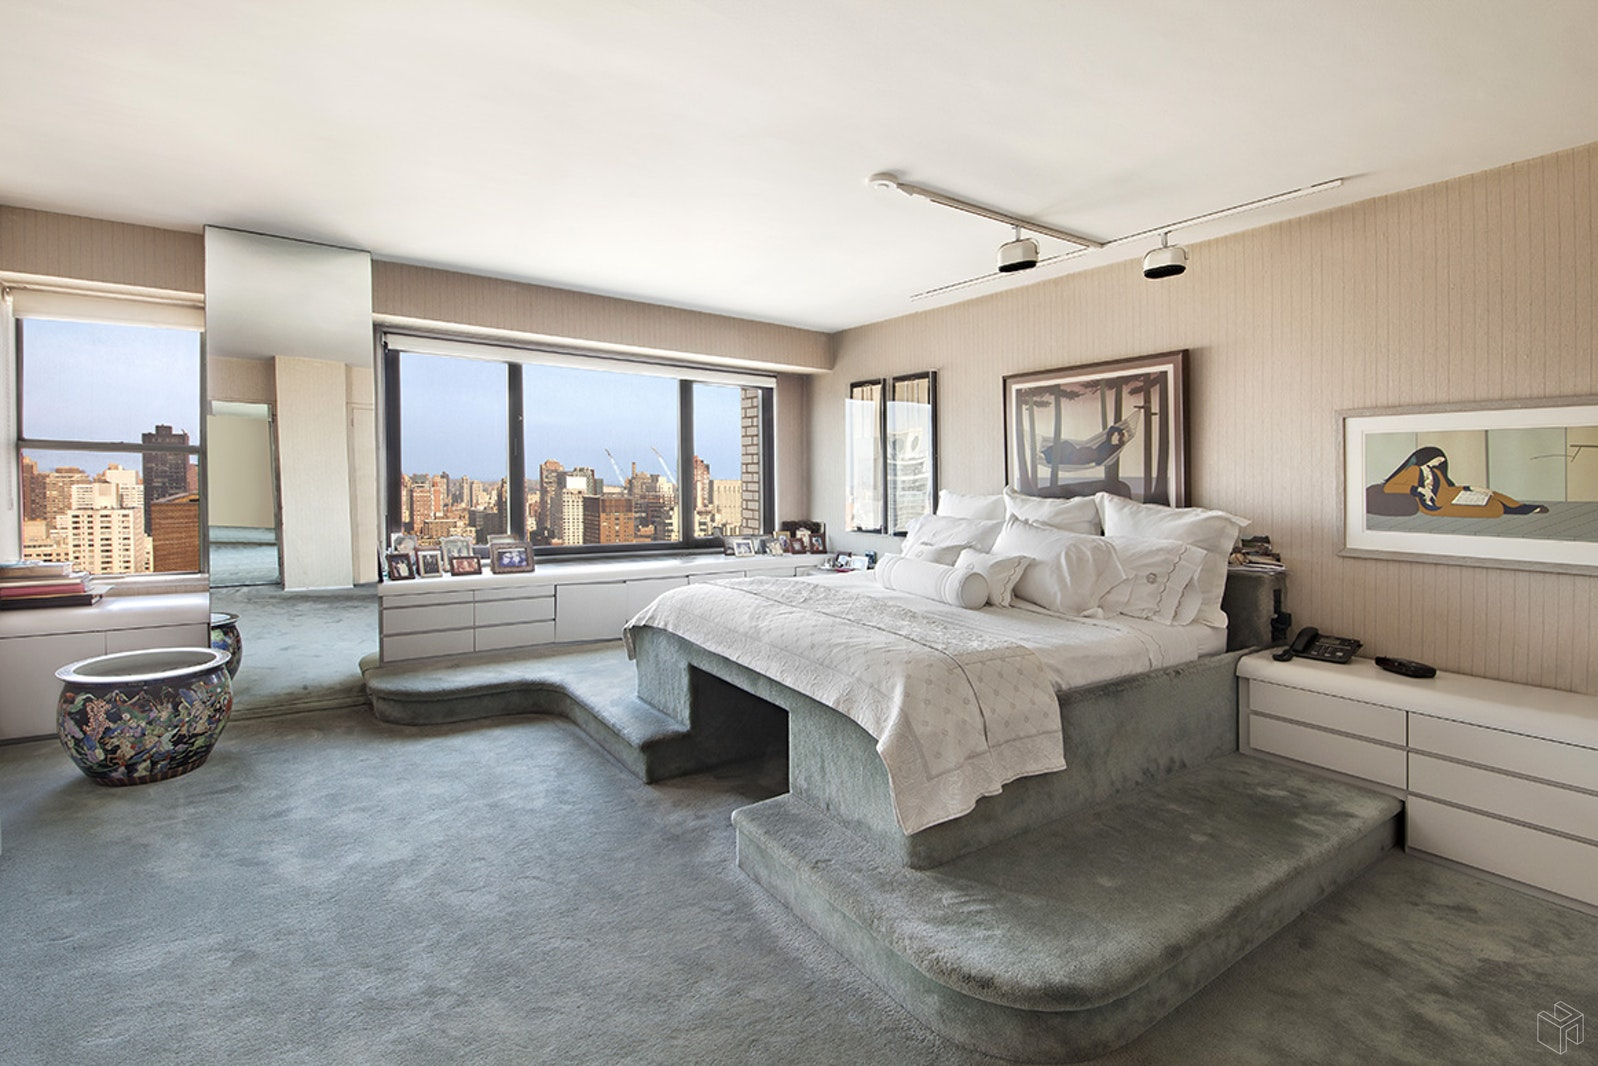 303 East 57th Street 39de, Midtown East, NYC, 10022, $1,750,000, Property For Sale, Halstead Real Estate, Photo 3